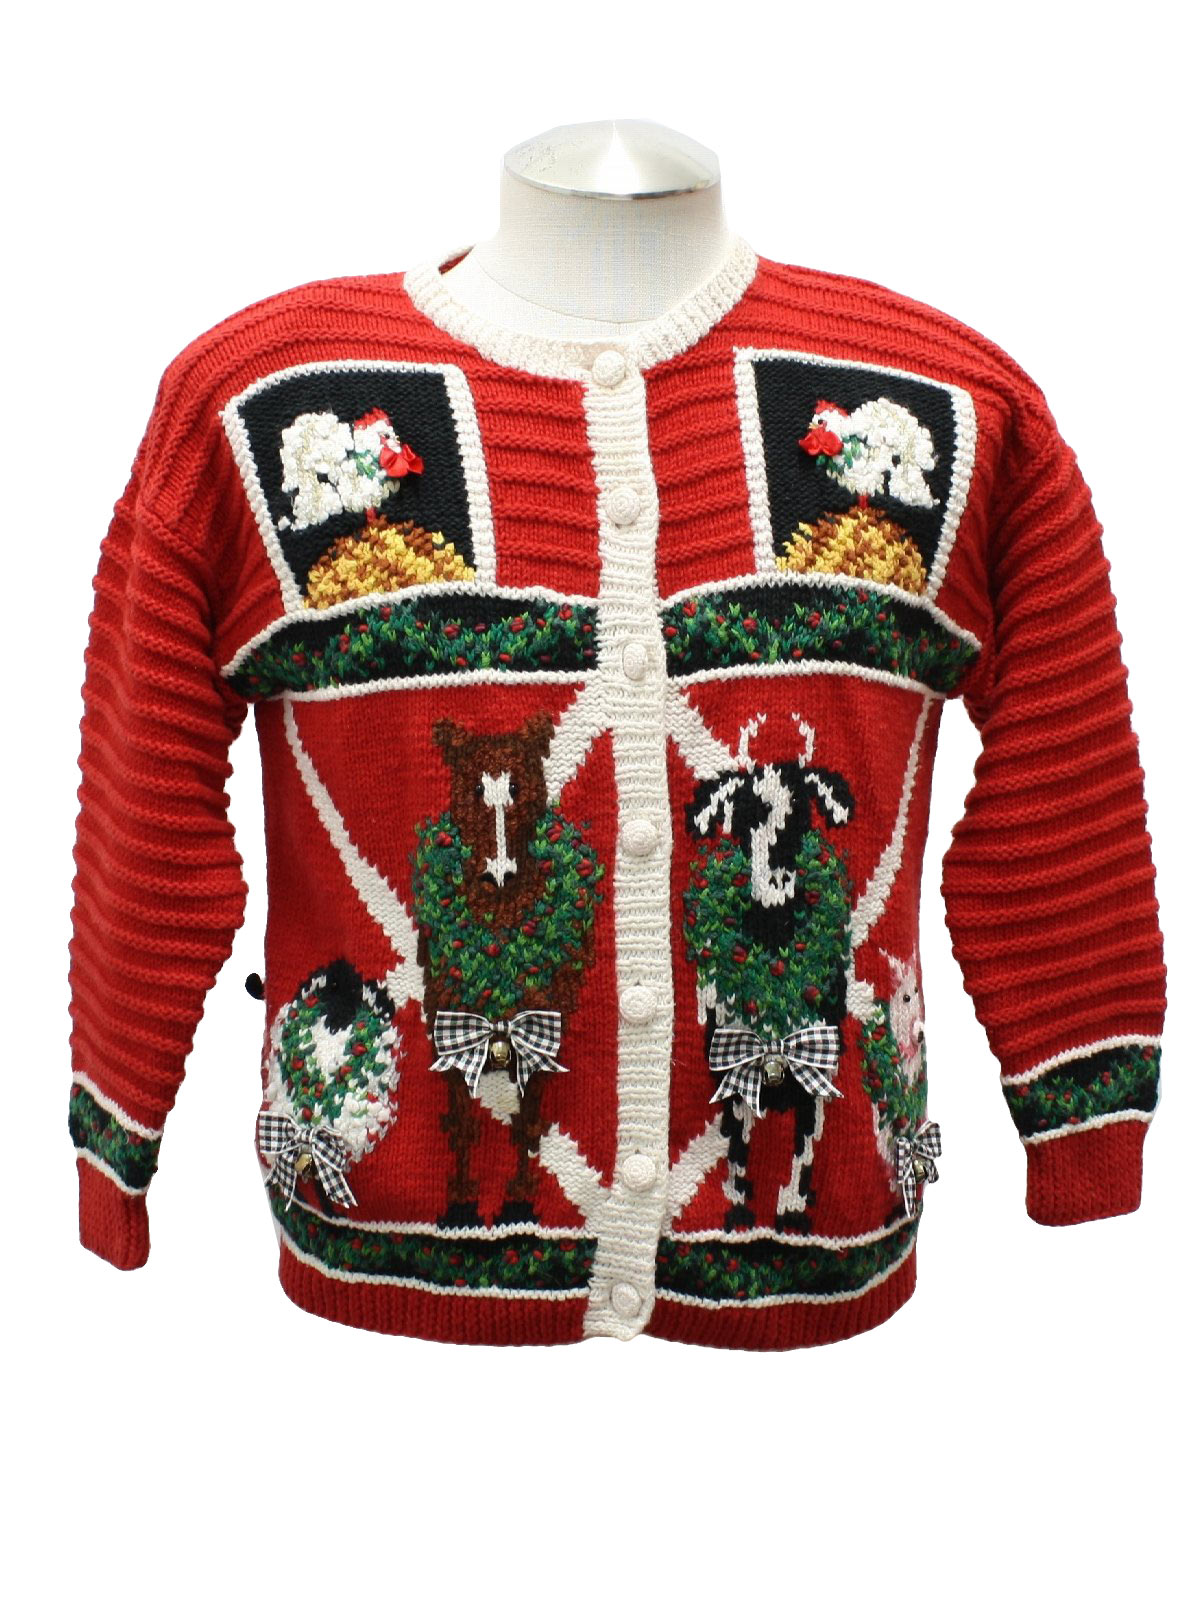 Marisa Christina Womens Ugly Christmas Sweater $38.00 Not in stock. Item No. 197939